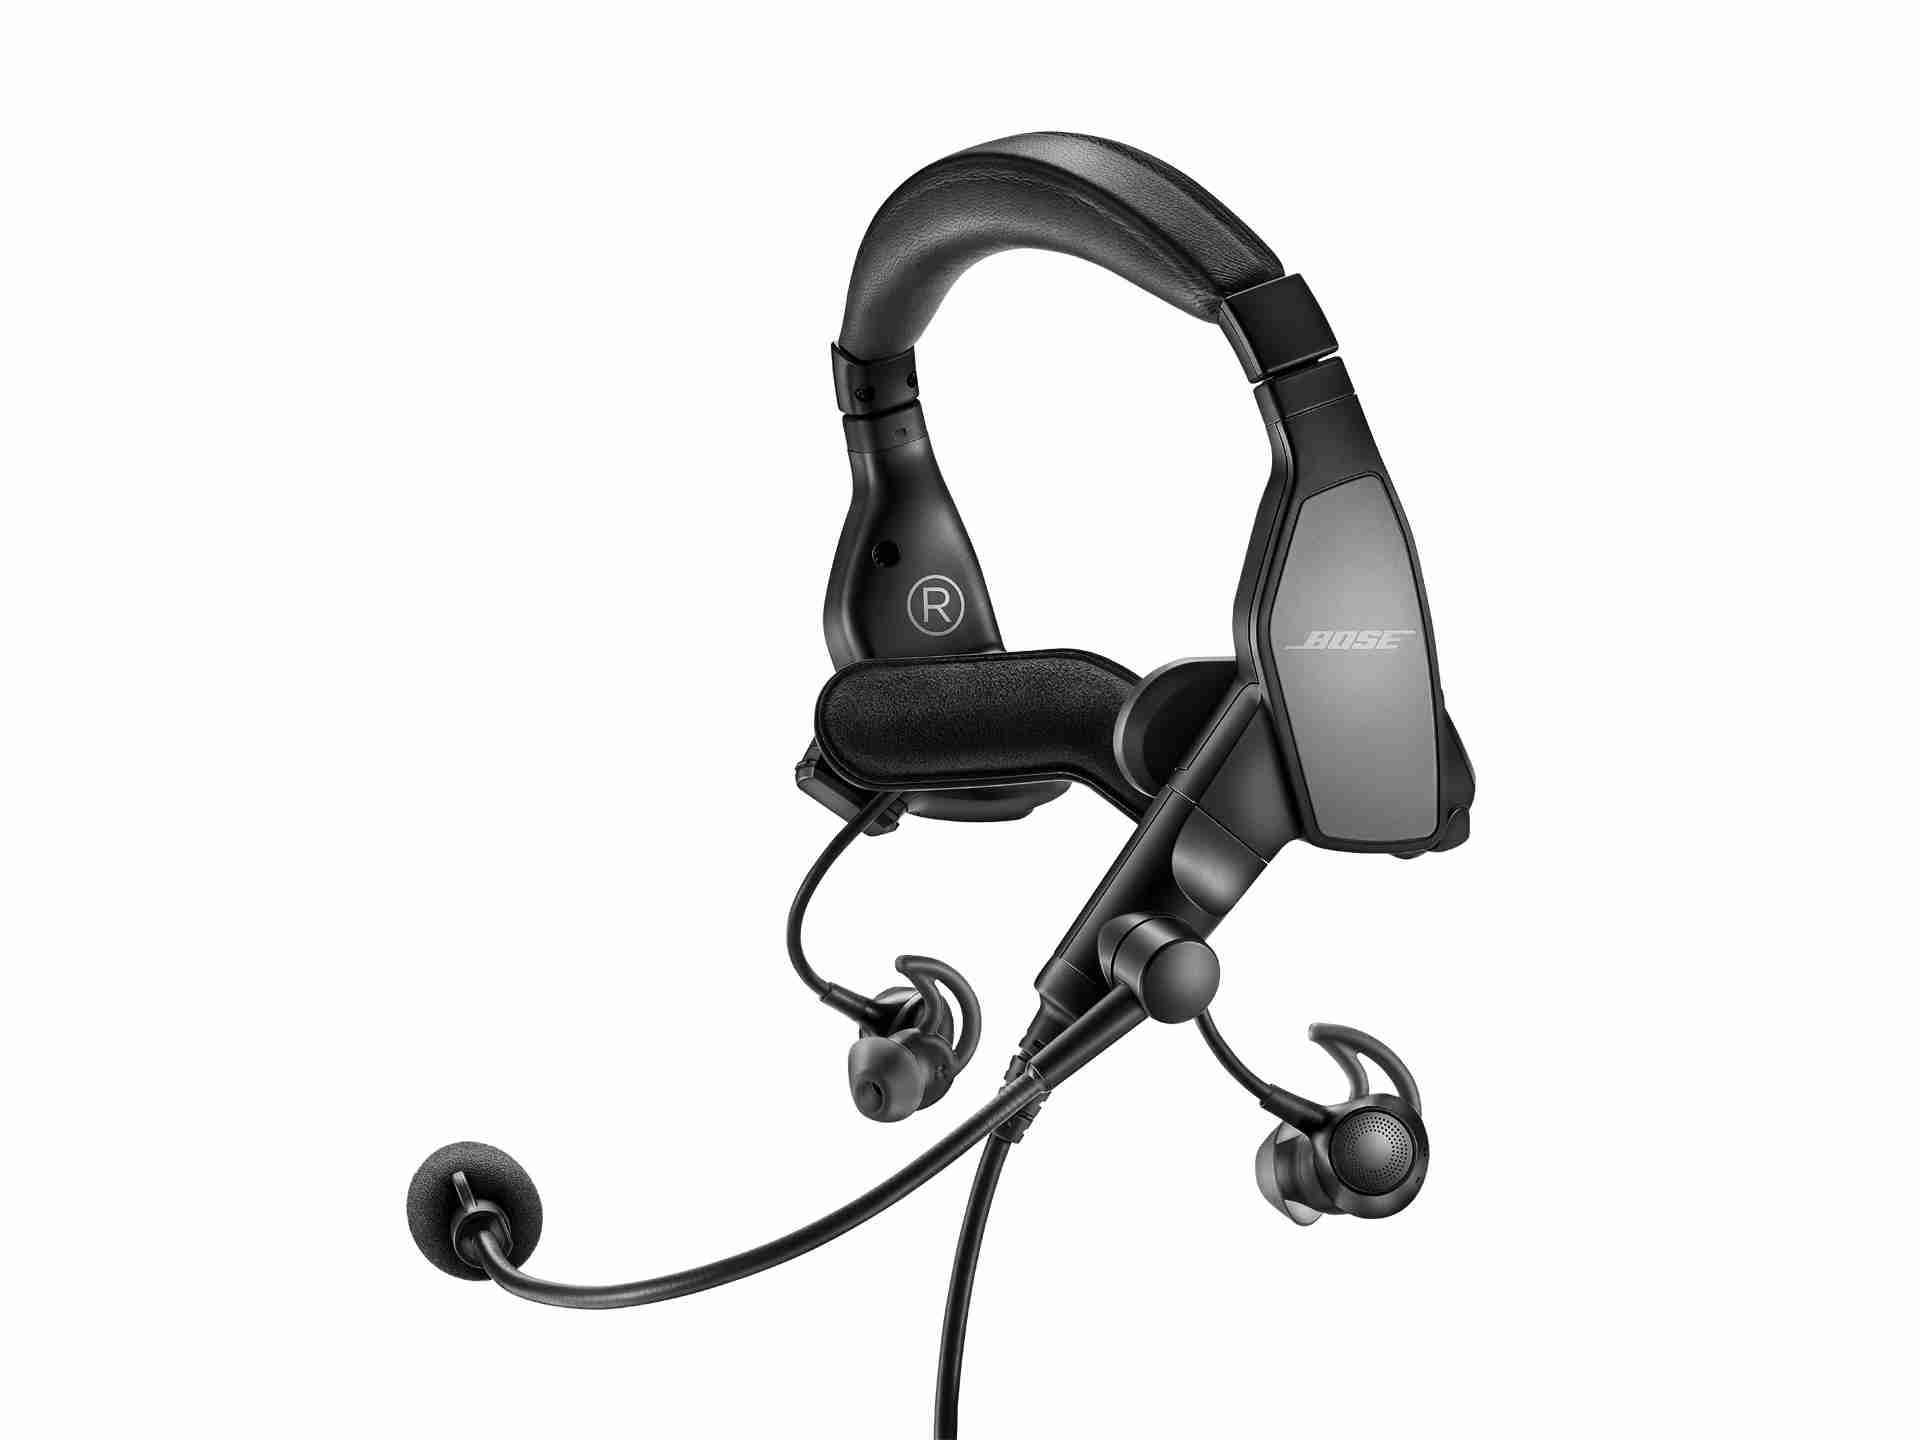 Casque d'Aviation ProFlight Série 2 - Bluetooth Casques Bose Bose